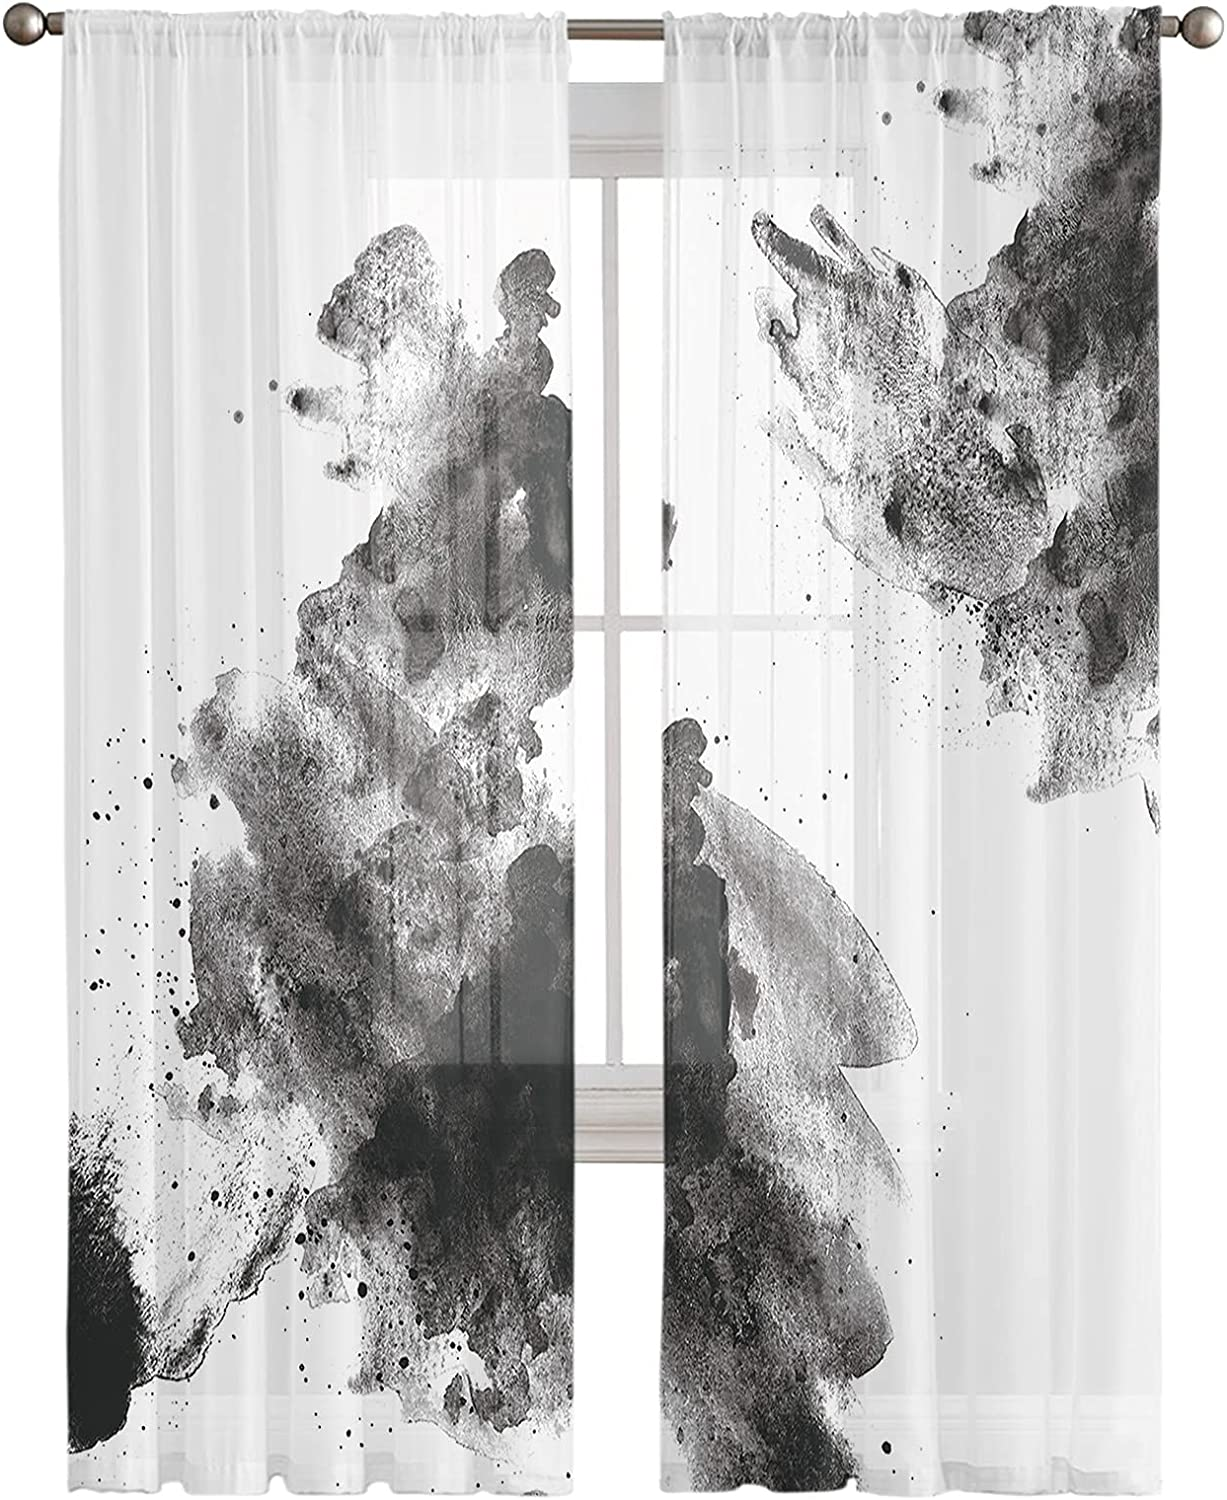 Voile Sheer Curtains 84inch Many popular Seasonal Wrap Introduction brands Long 2 White Black Ink Panels Art